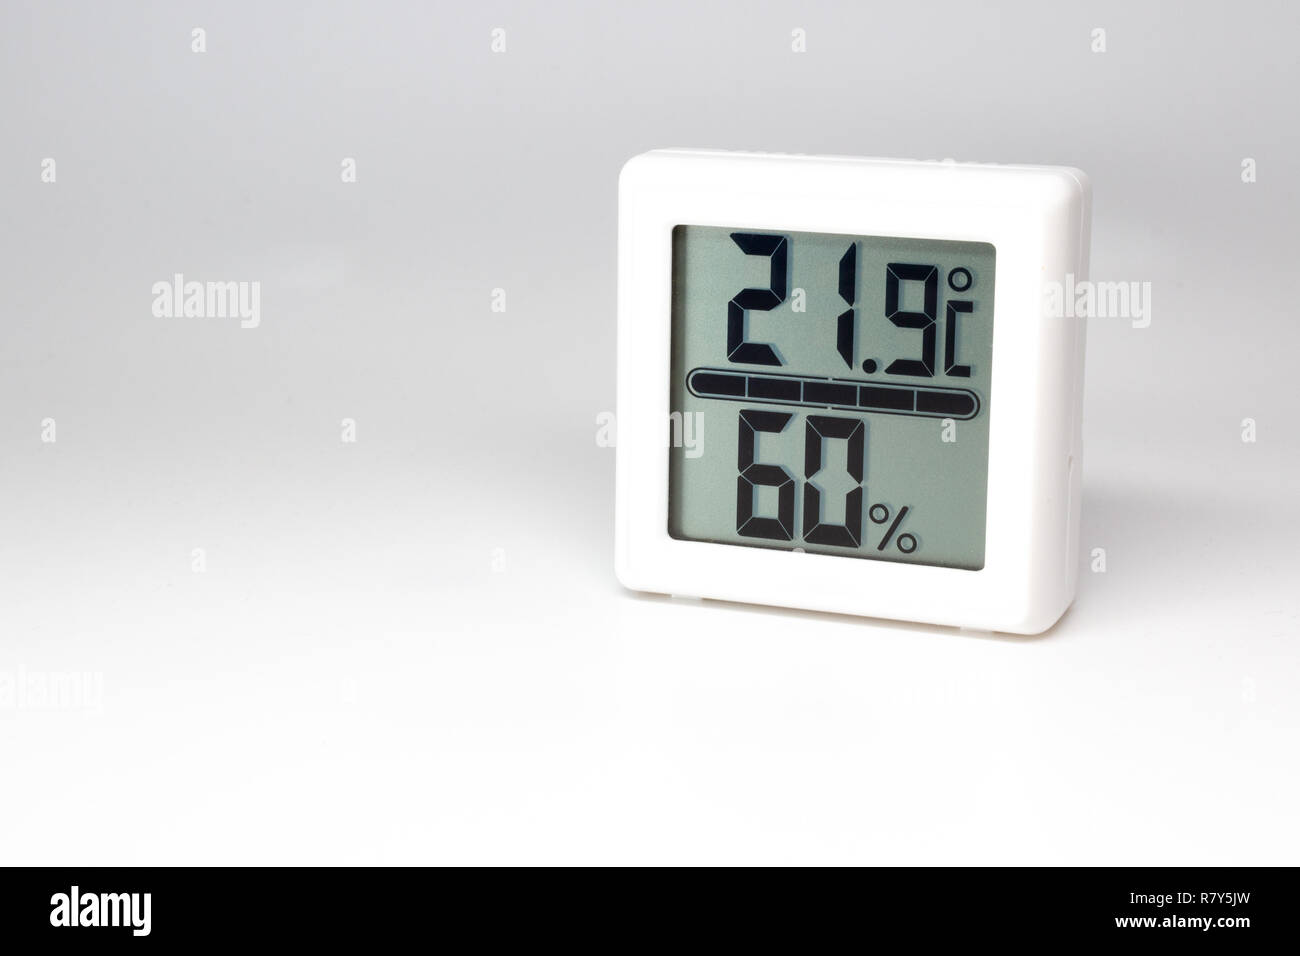 Digital device measuring temperature and humidity. Thermometer and hygrometer. Celsius and percent. - Stock Image